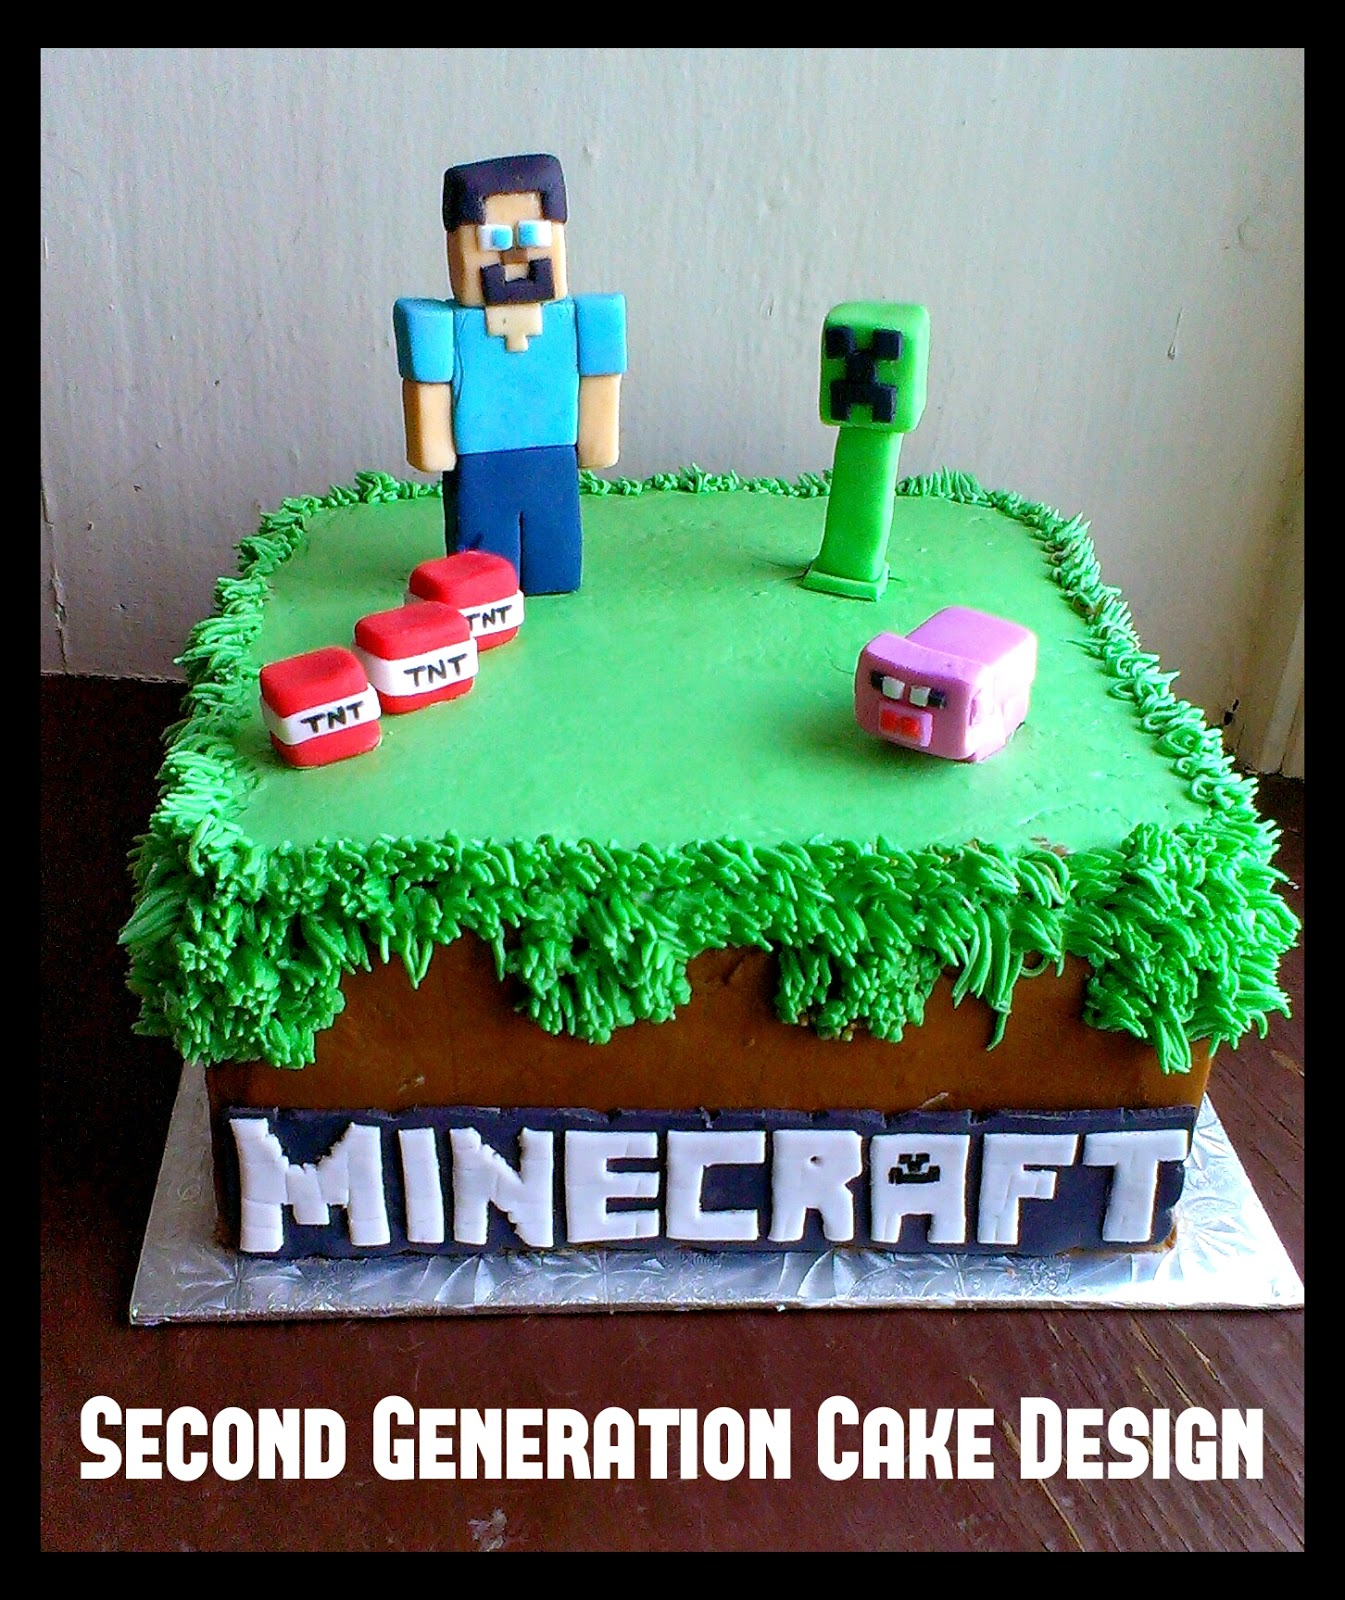 Second Generation Cake Design Minecraft Birthday Cake